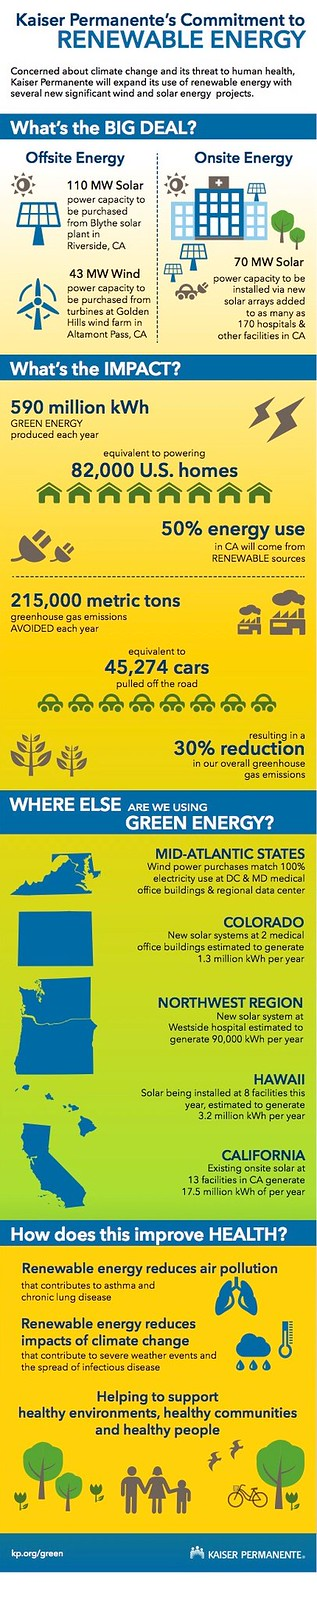 Renewable Energy Infographic 52943